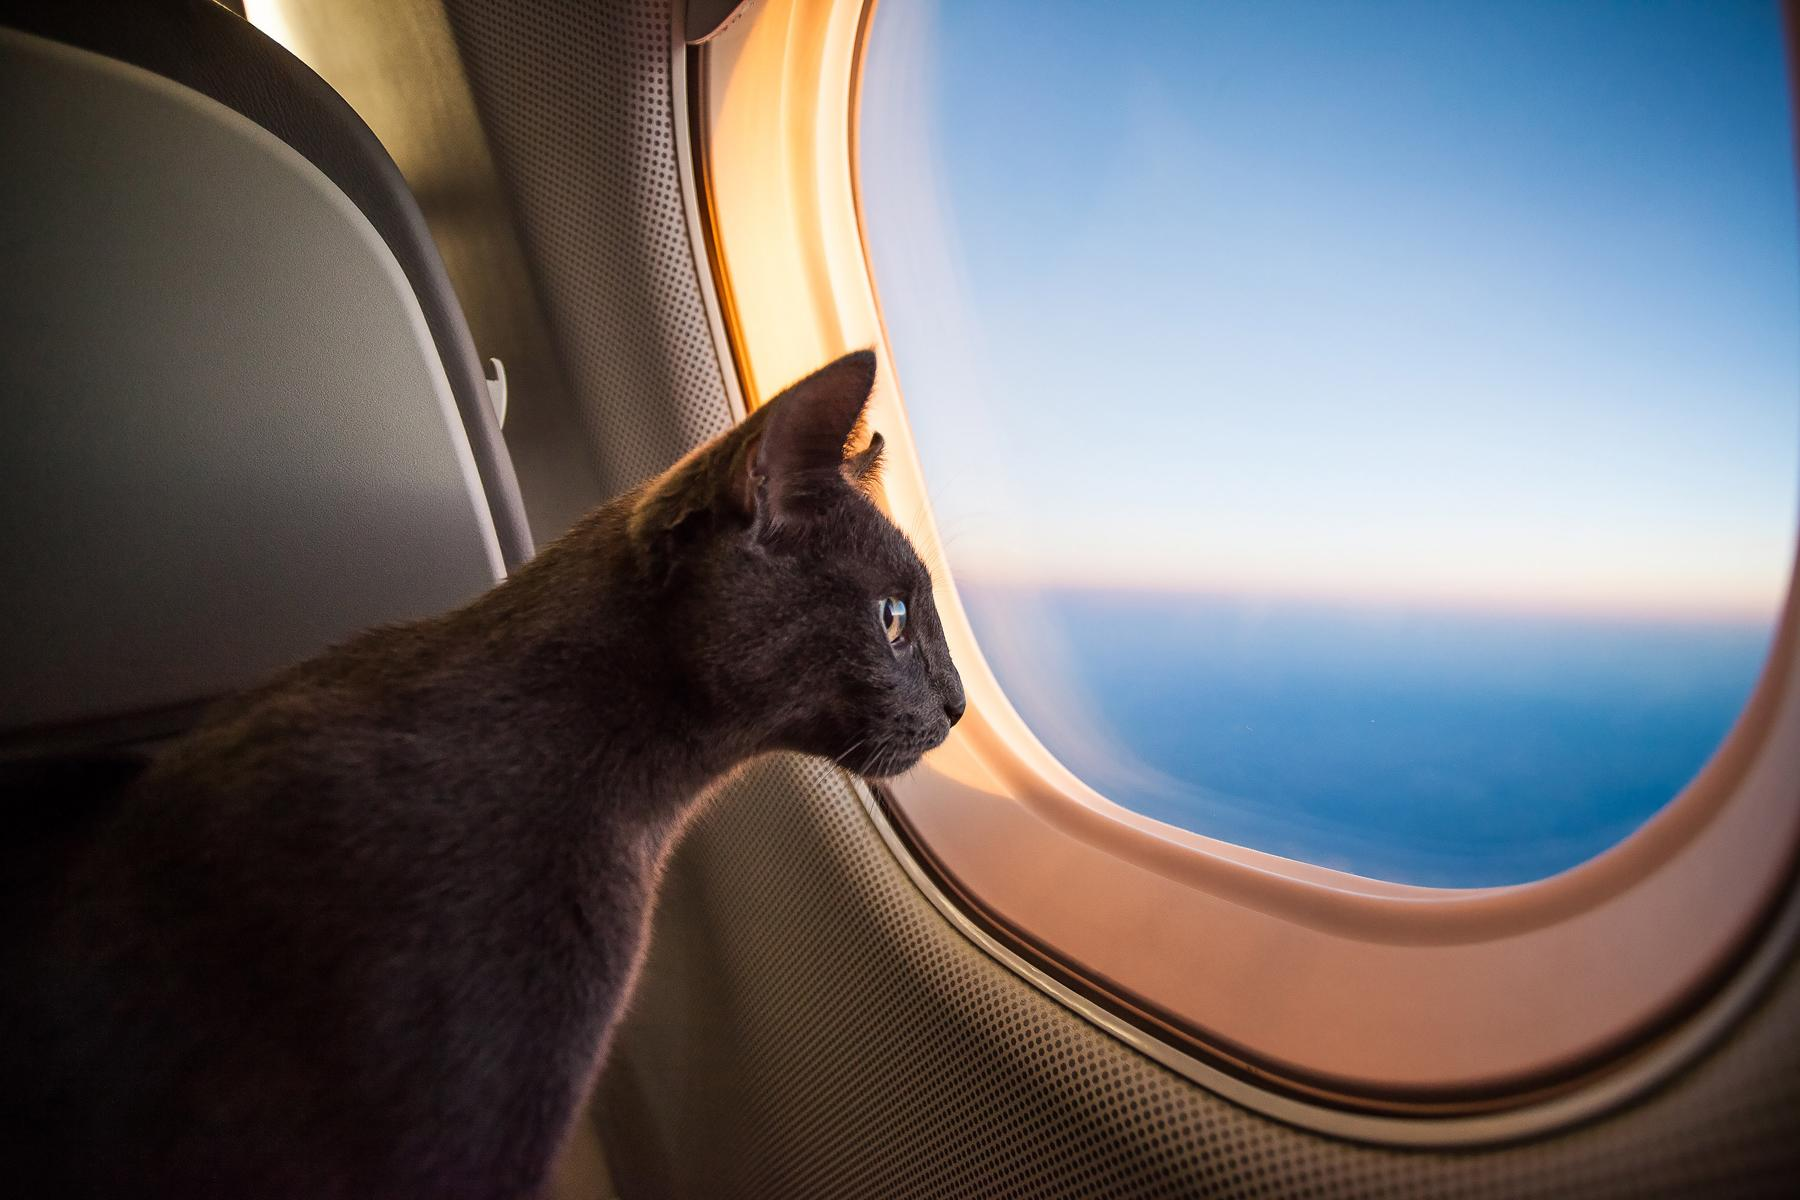 Cat on a plane